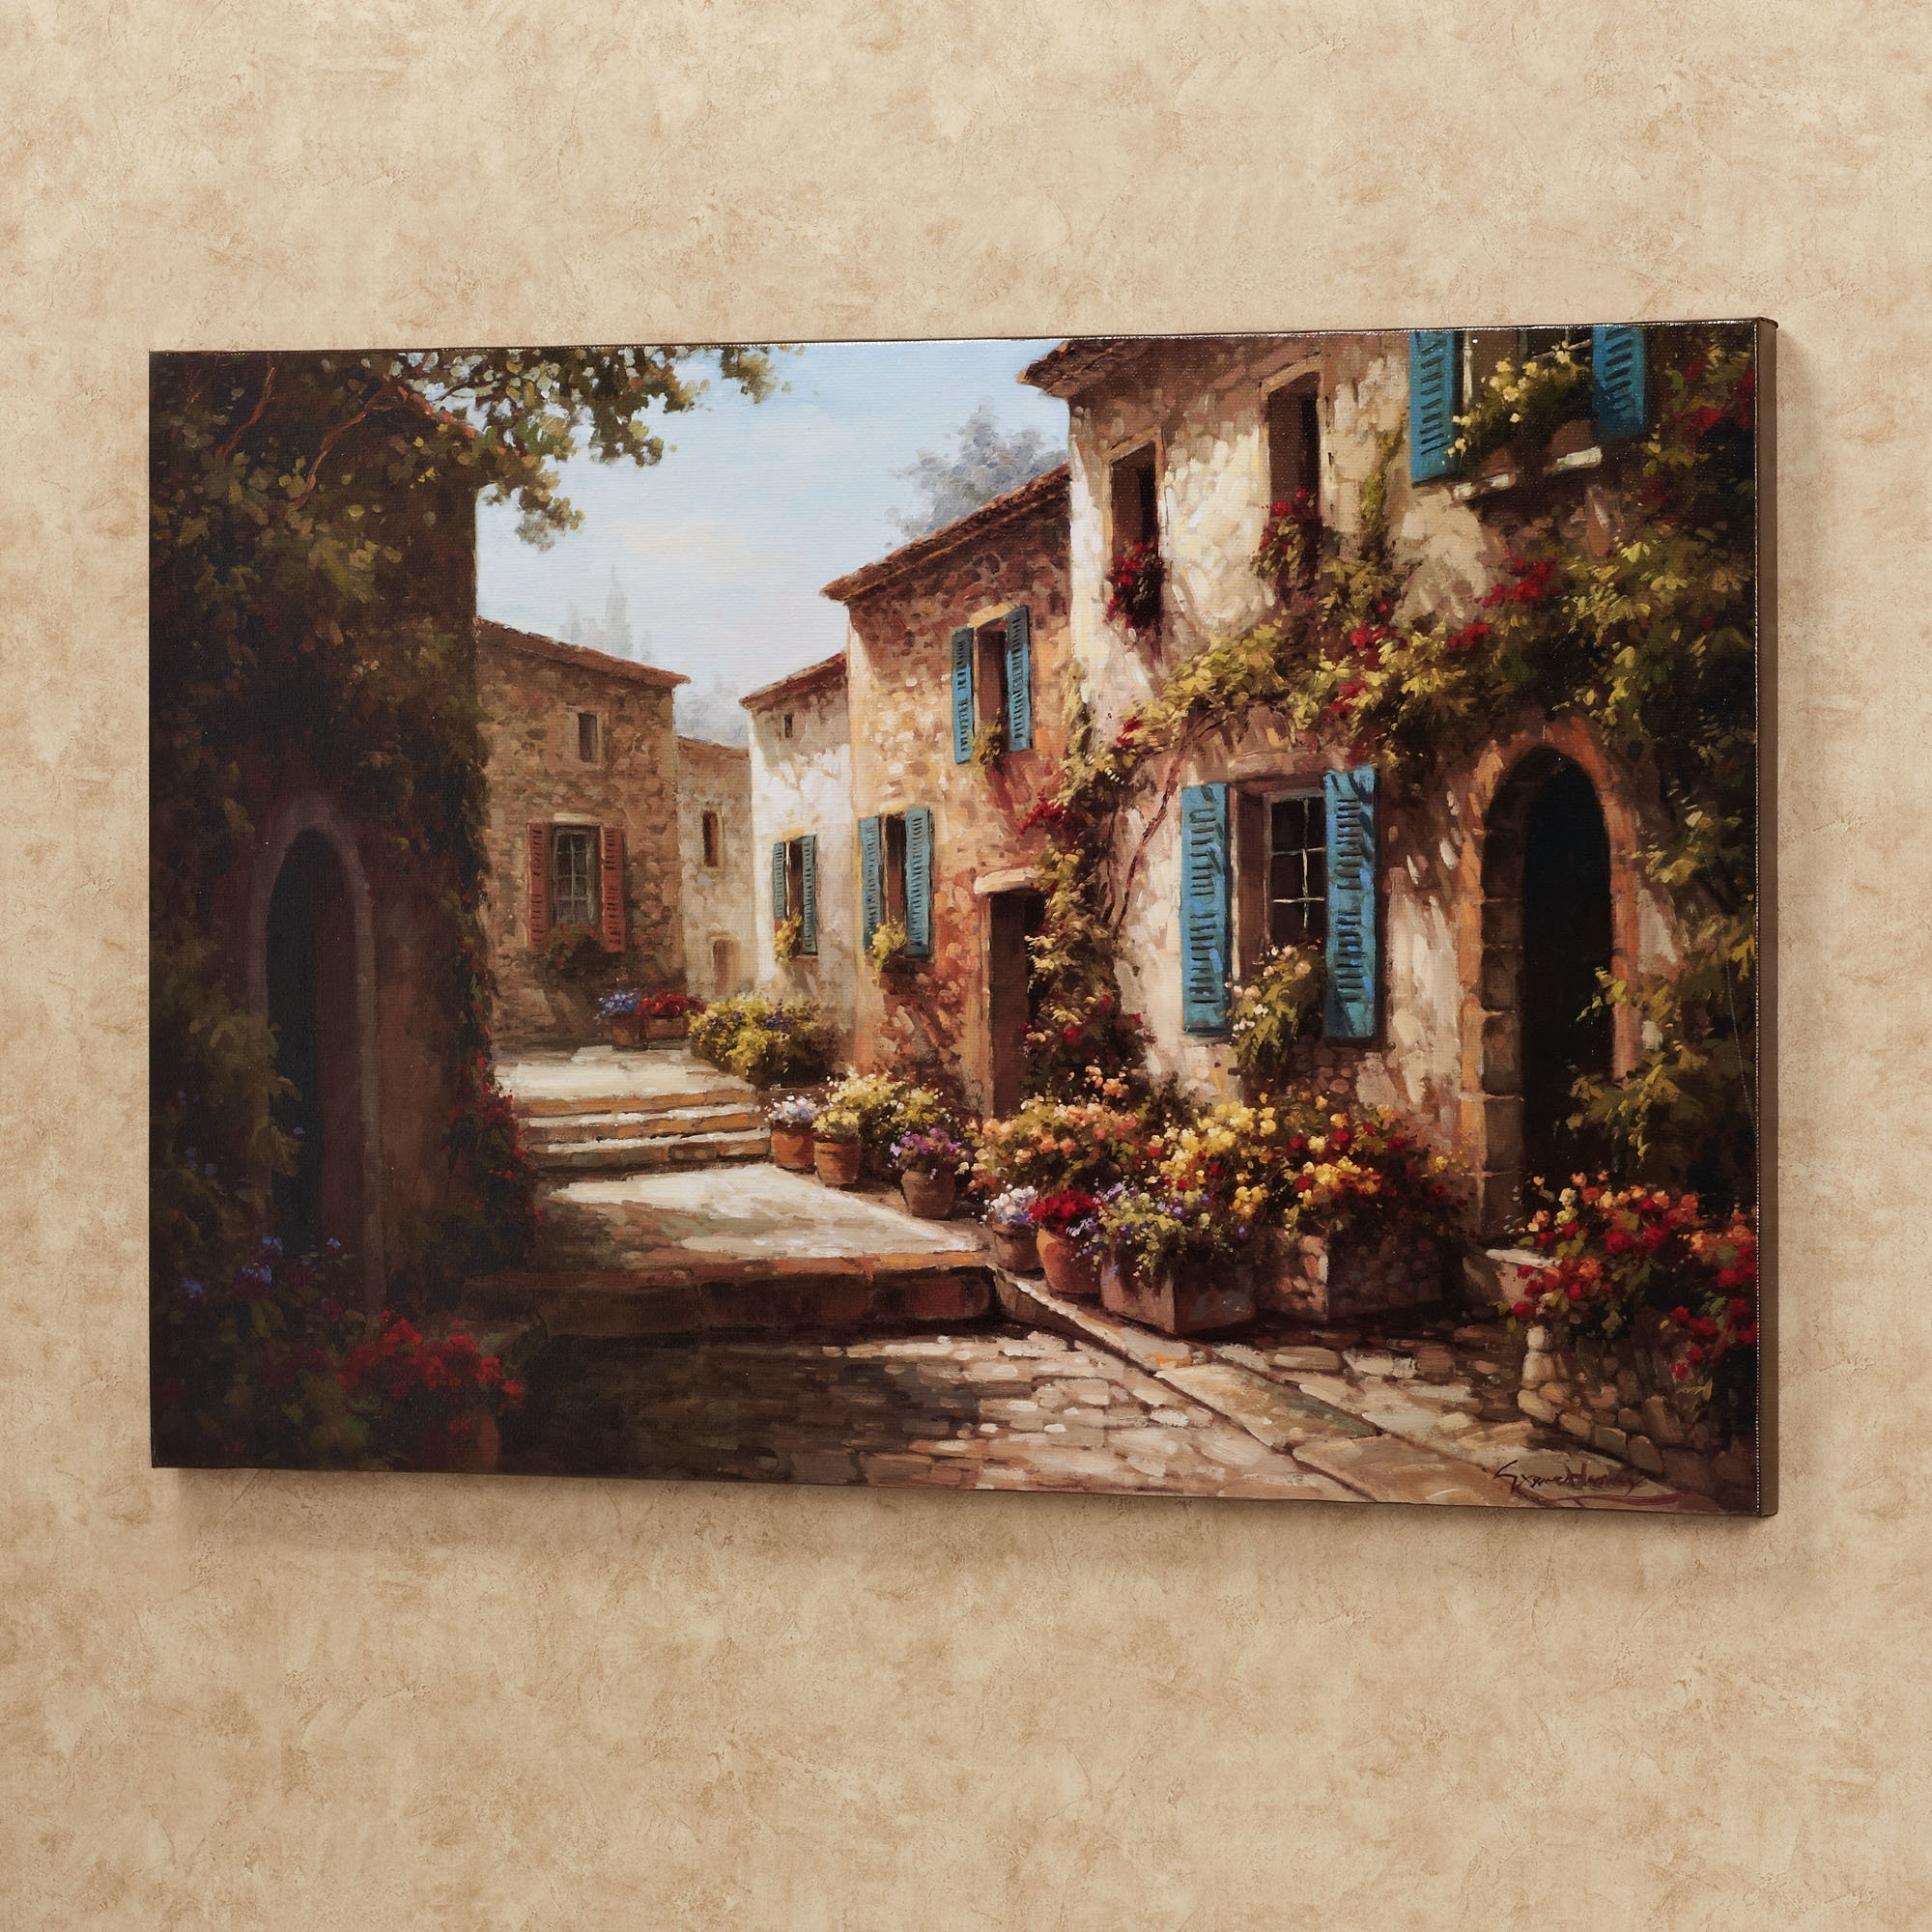 Walkway Of Flowers Villas Canvas Wall Art | Walkways, Canvases And With Regard To Recent Joval Canvas Wall Art (View 12 of 15)